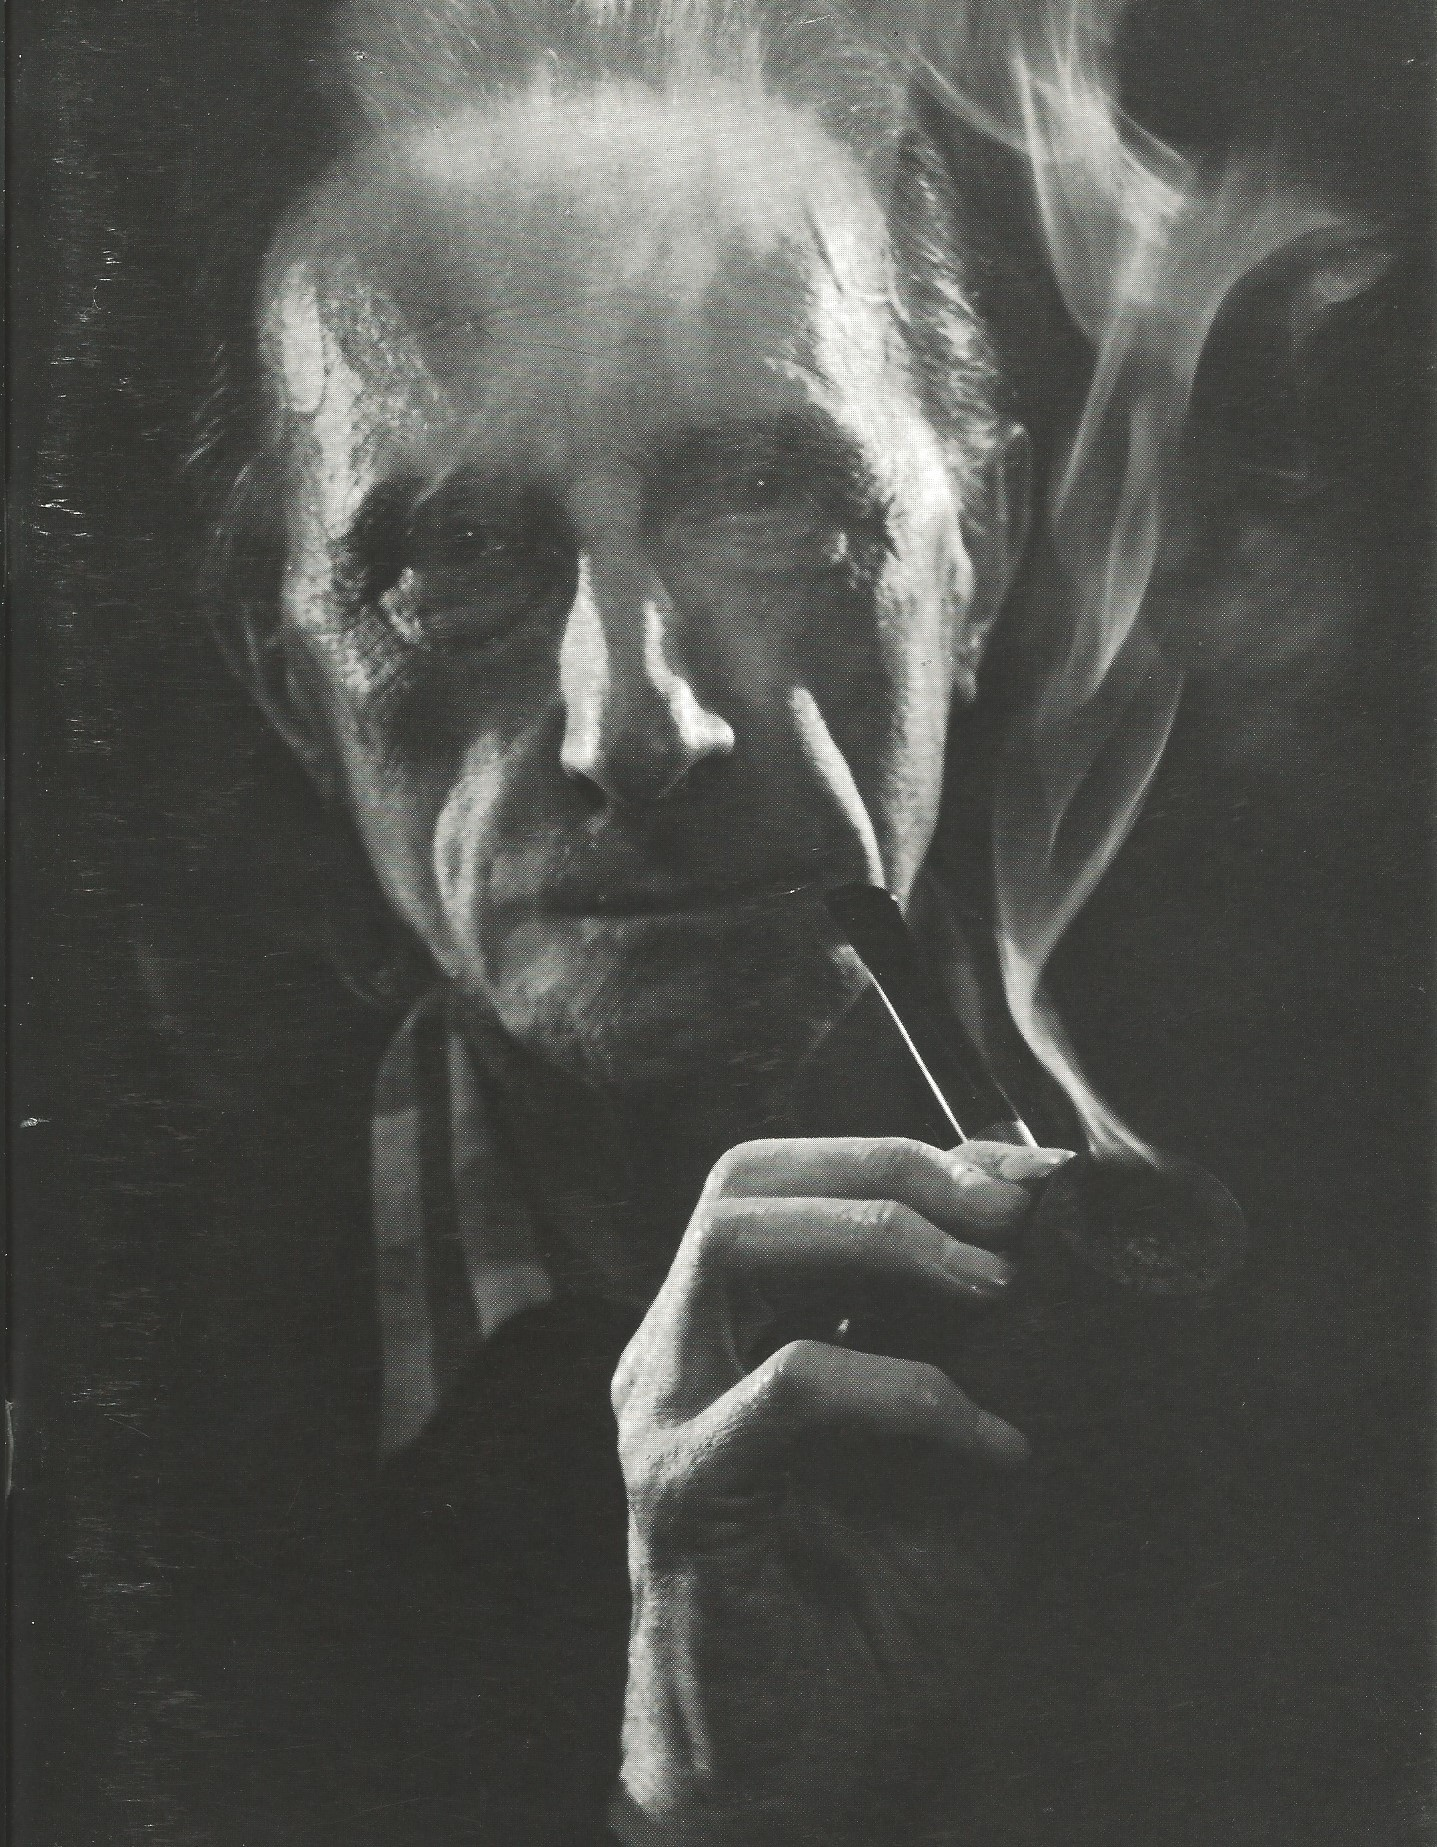 Image for ETANT DONNES : 1 LA CHUTE D'ECLAIRAGE : Reflections on a New York By Marcel Duchamp